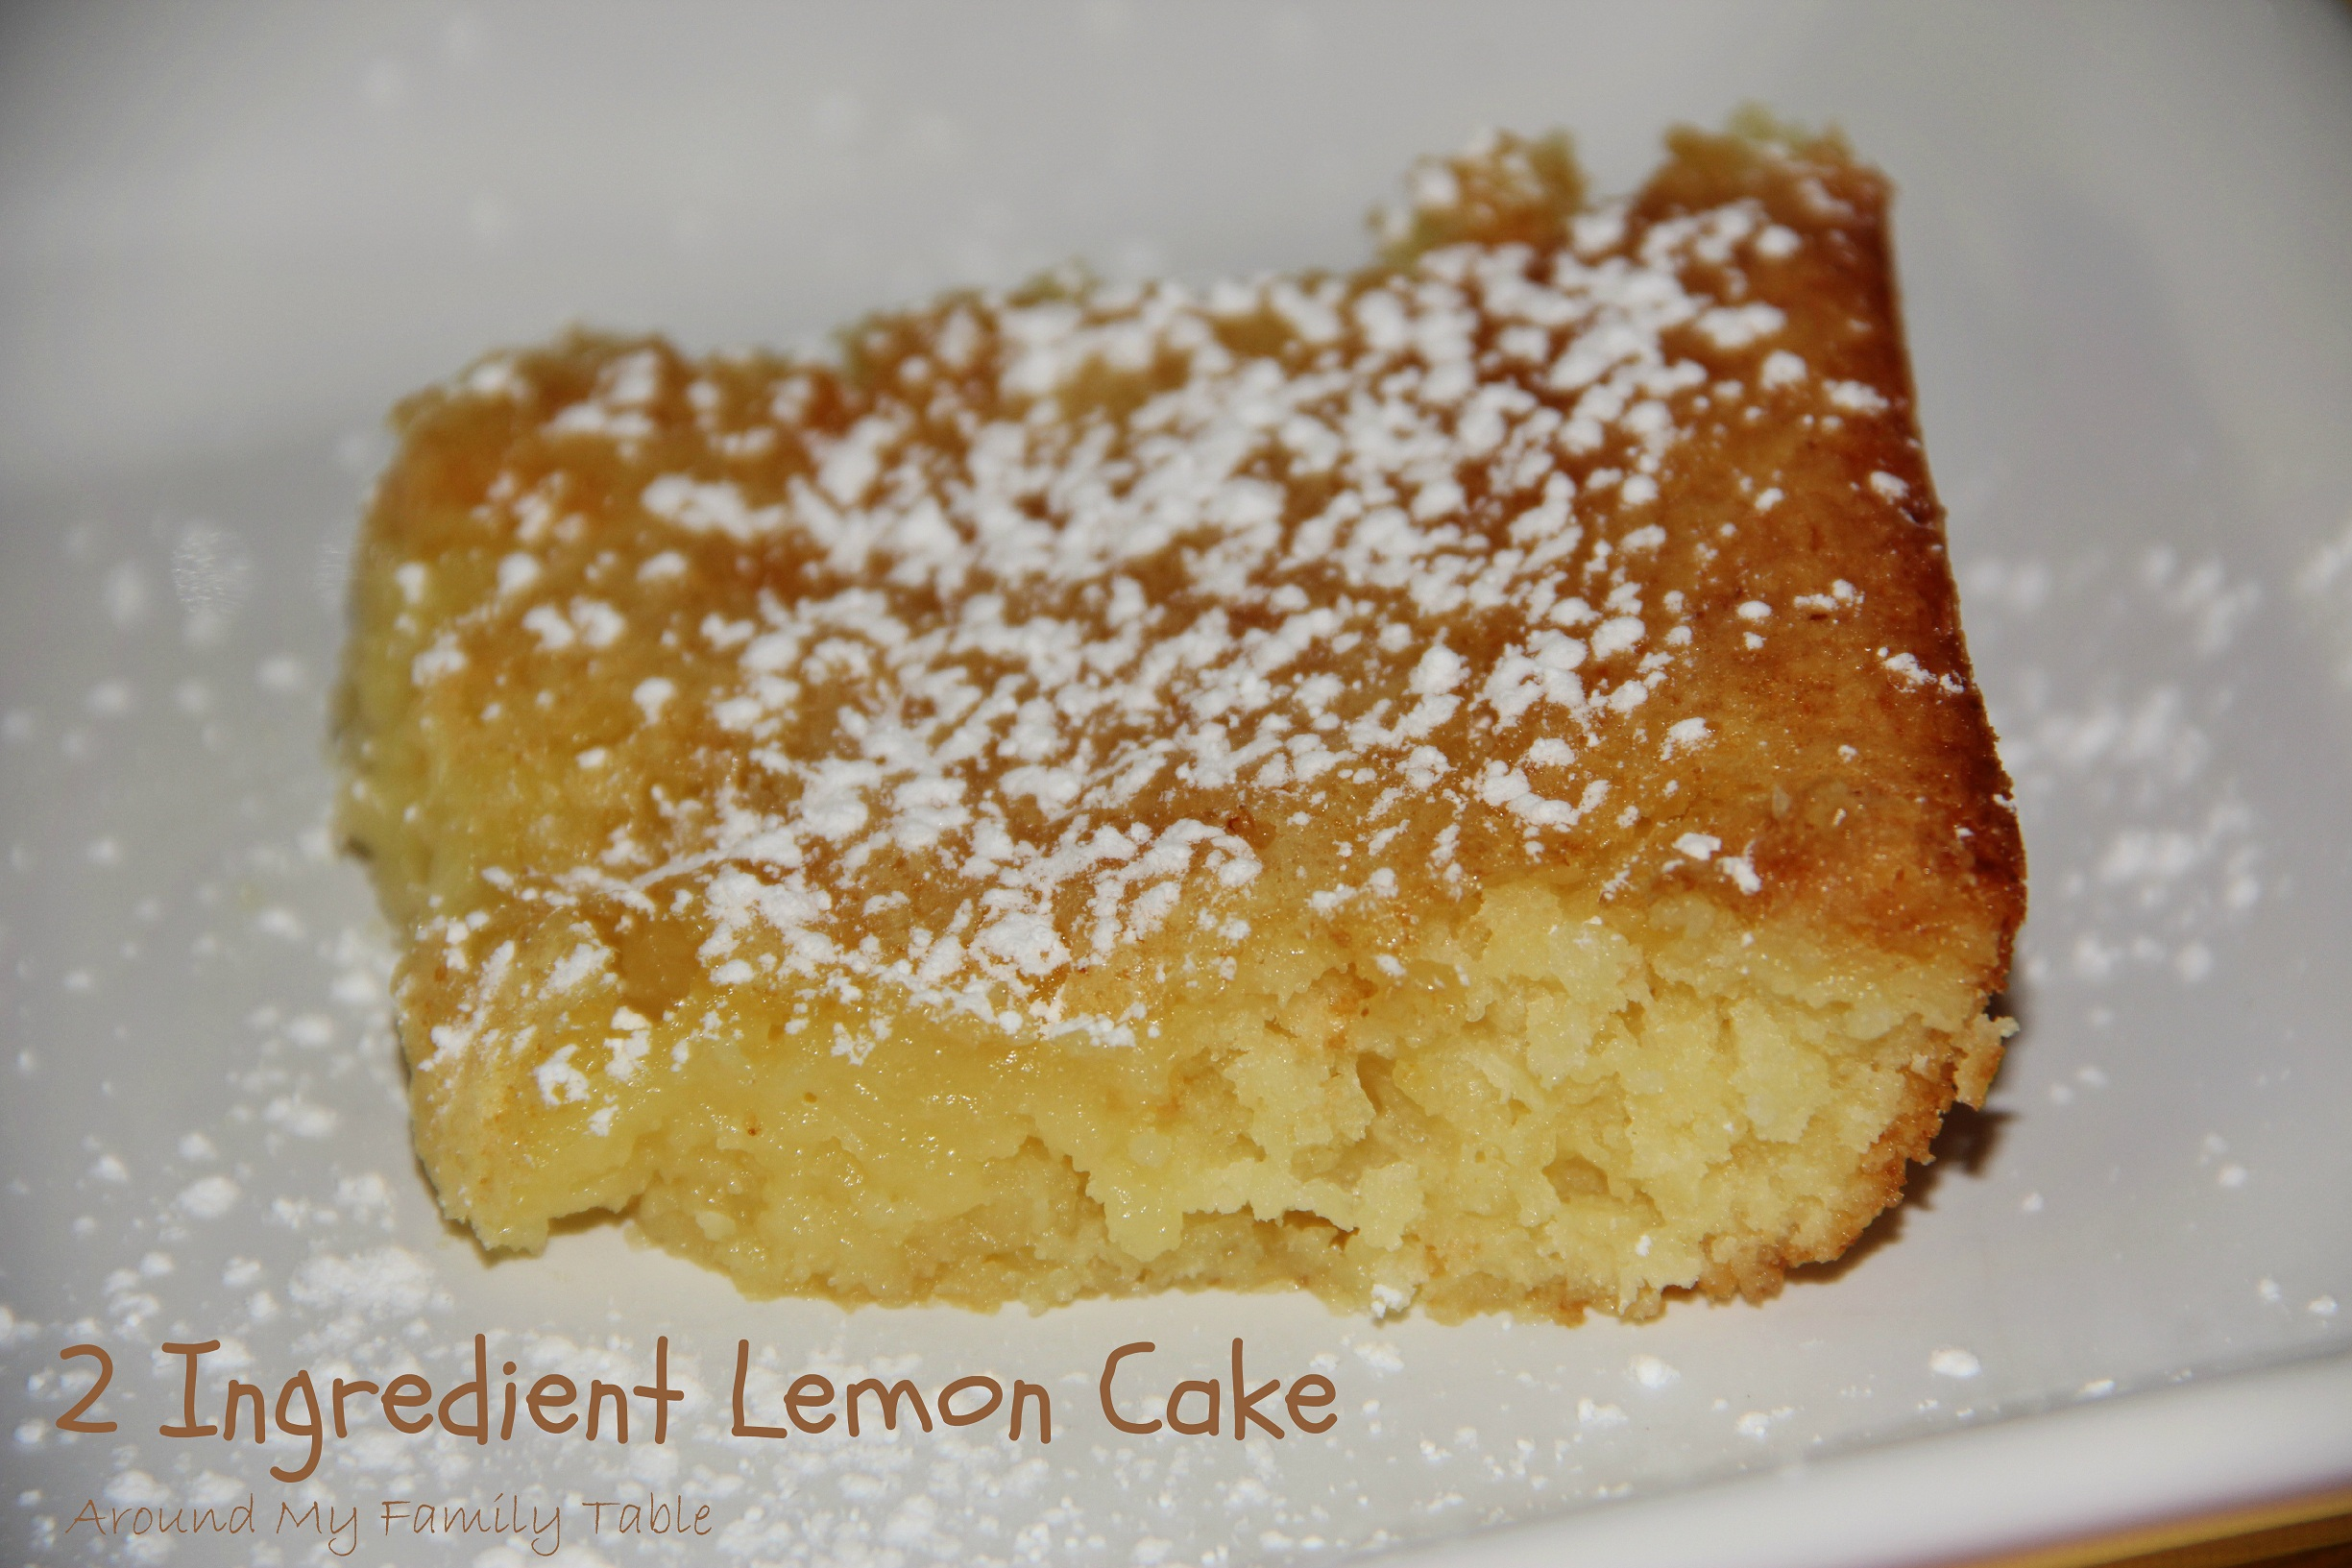 2 Ingredient Lemon Cake - Around My Family Table